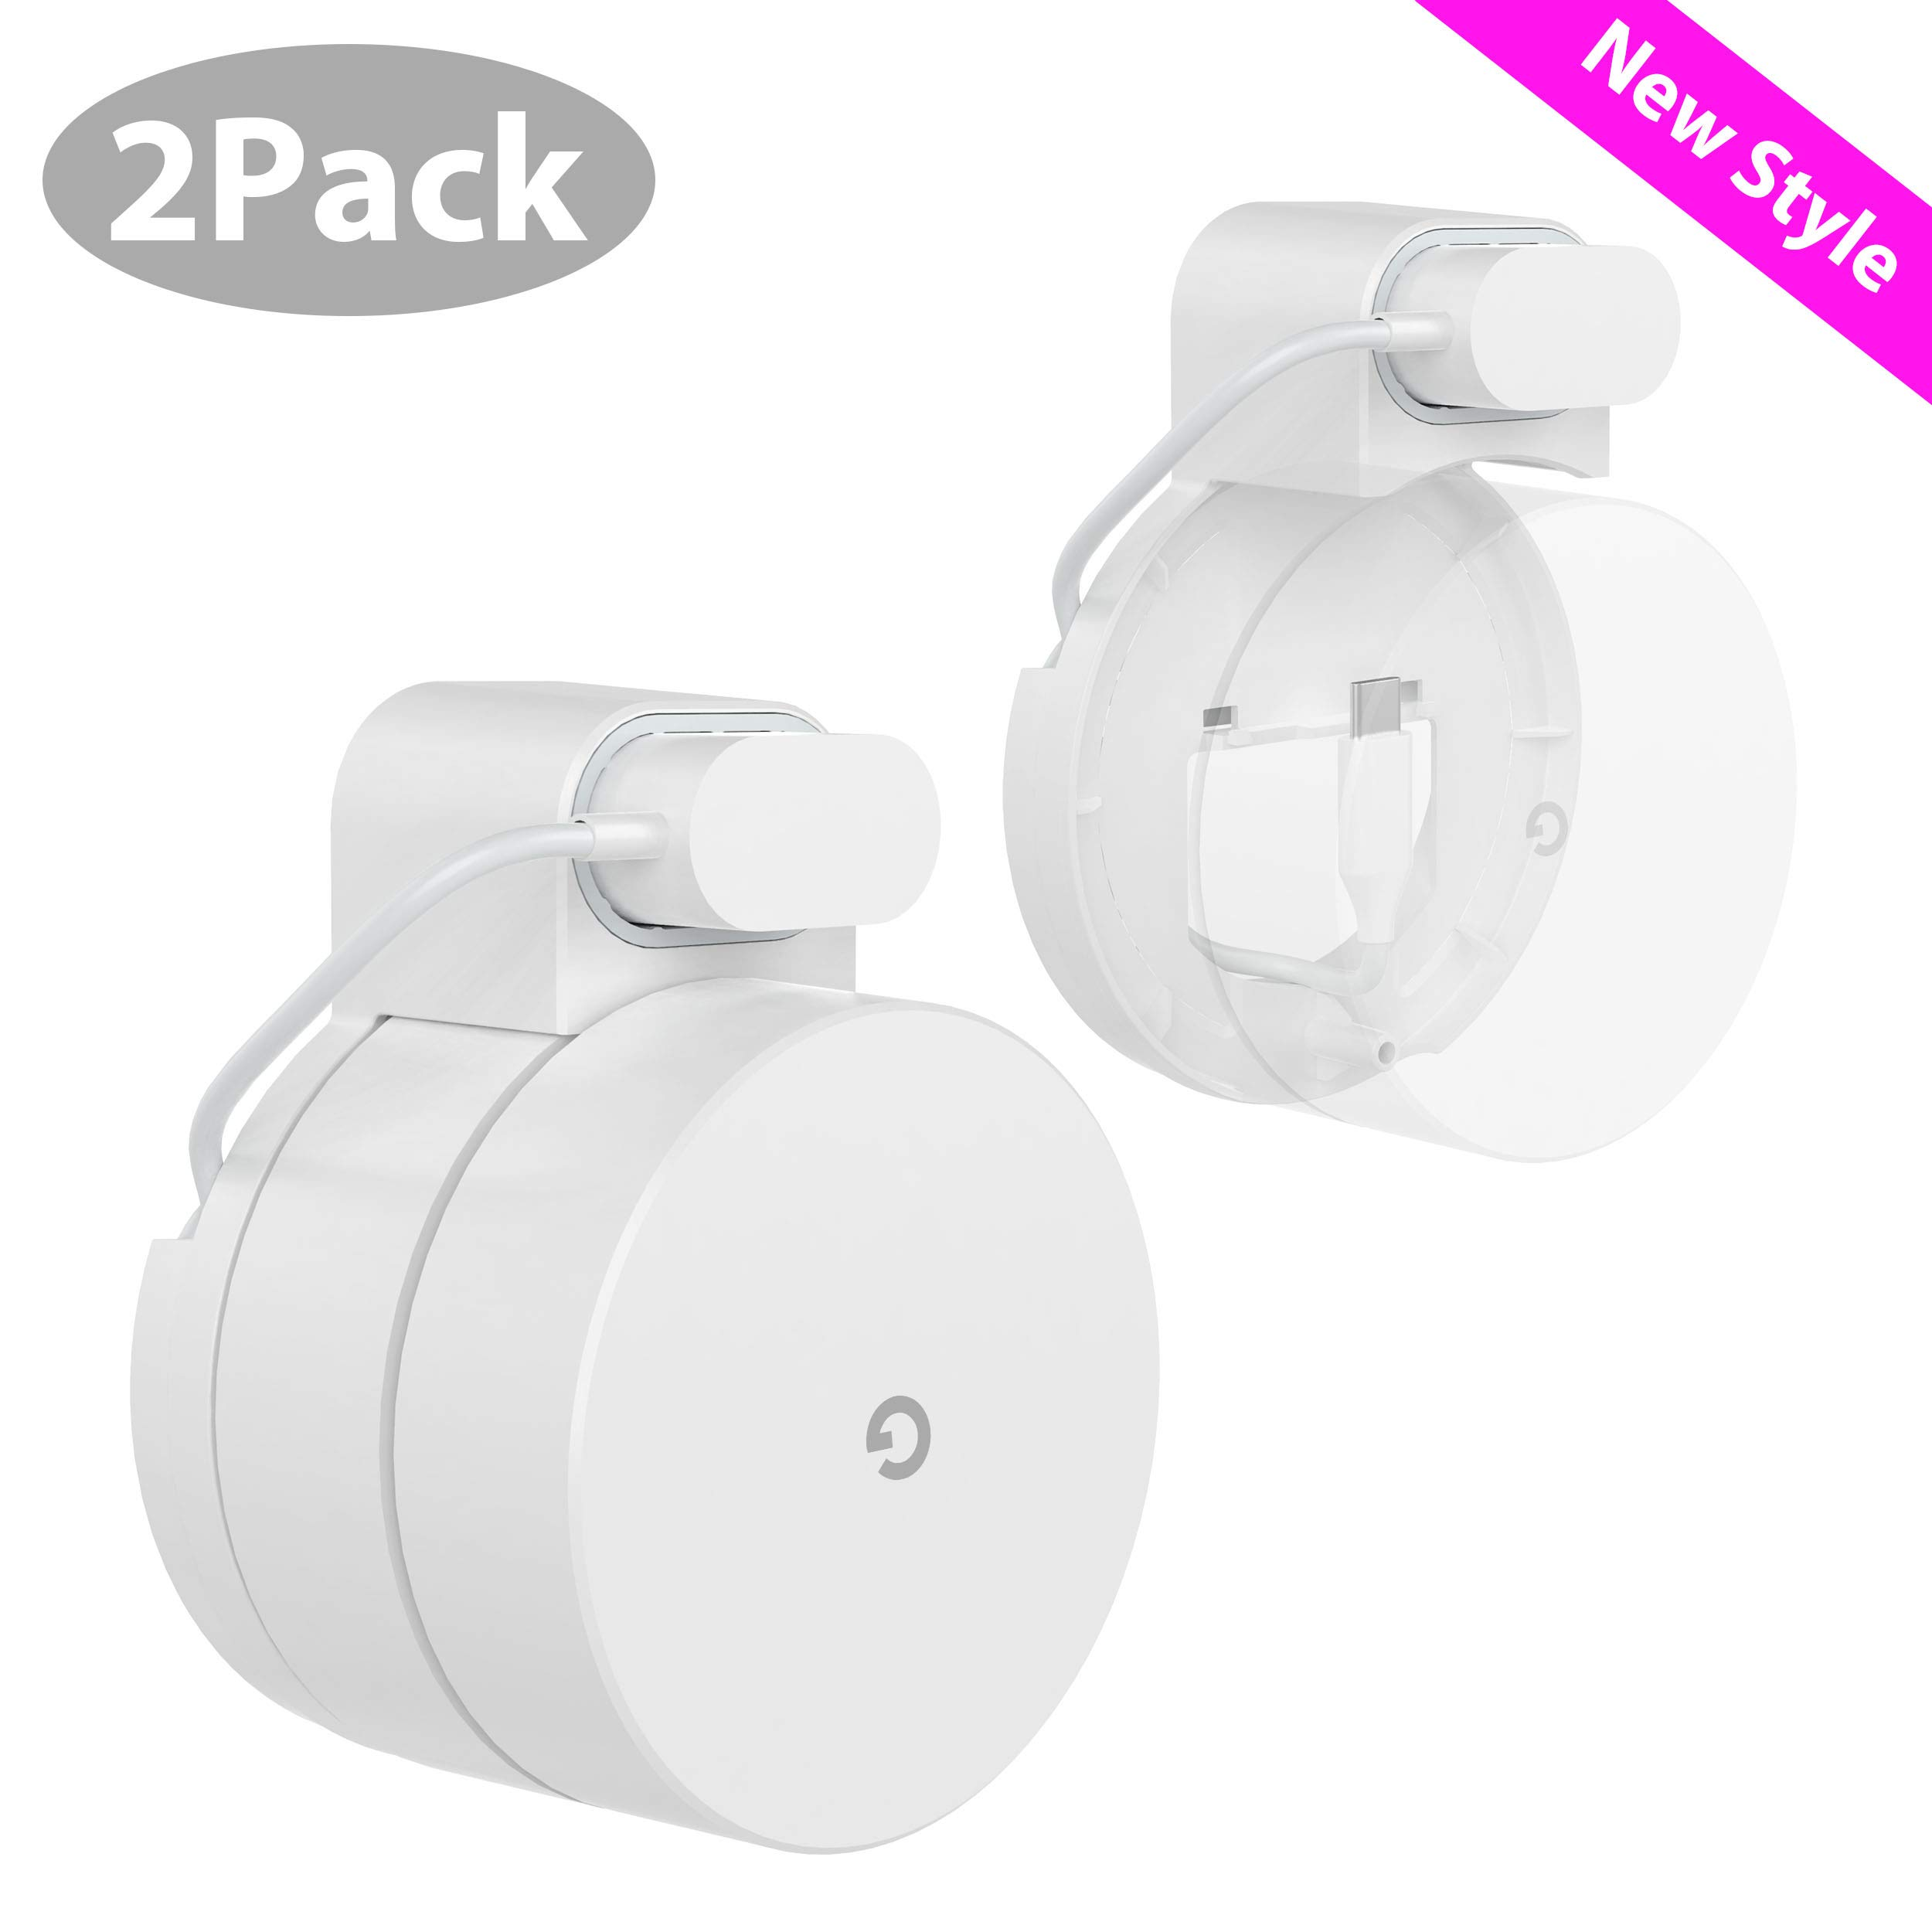 Google WiFi Mount, Stouchi No Protruding Parts Mount Holder for Google WiFi System All Blend into One Harmonious 2 Packs by Stouchi